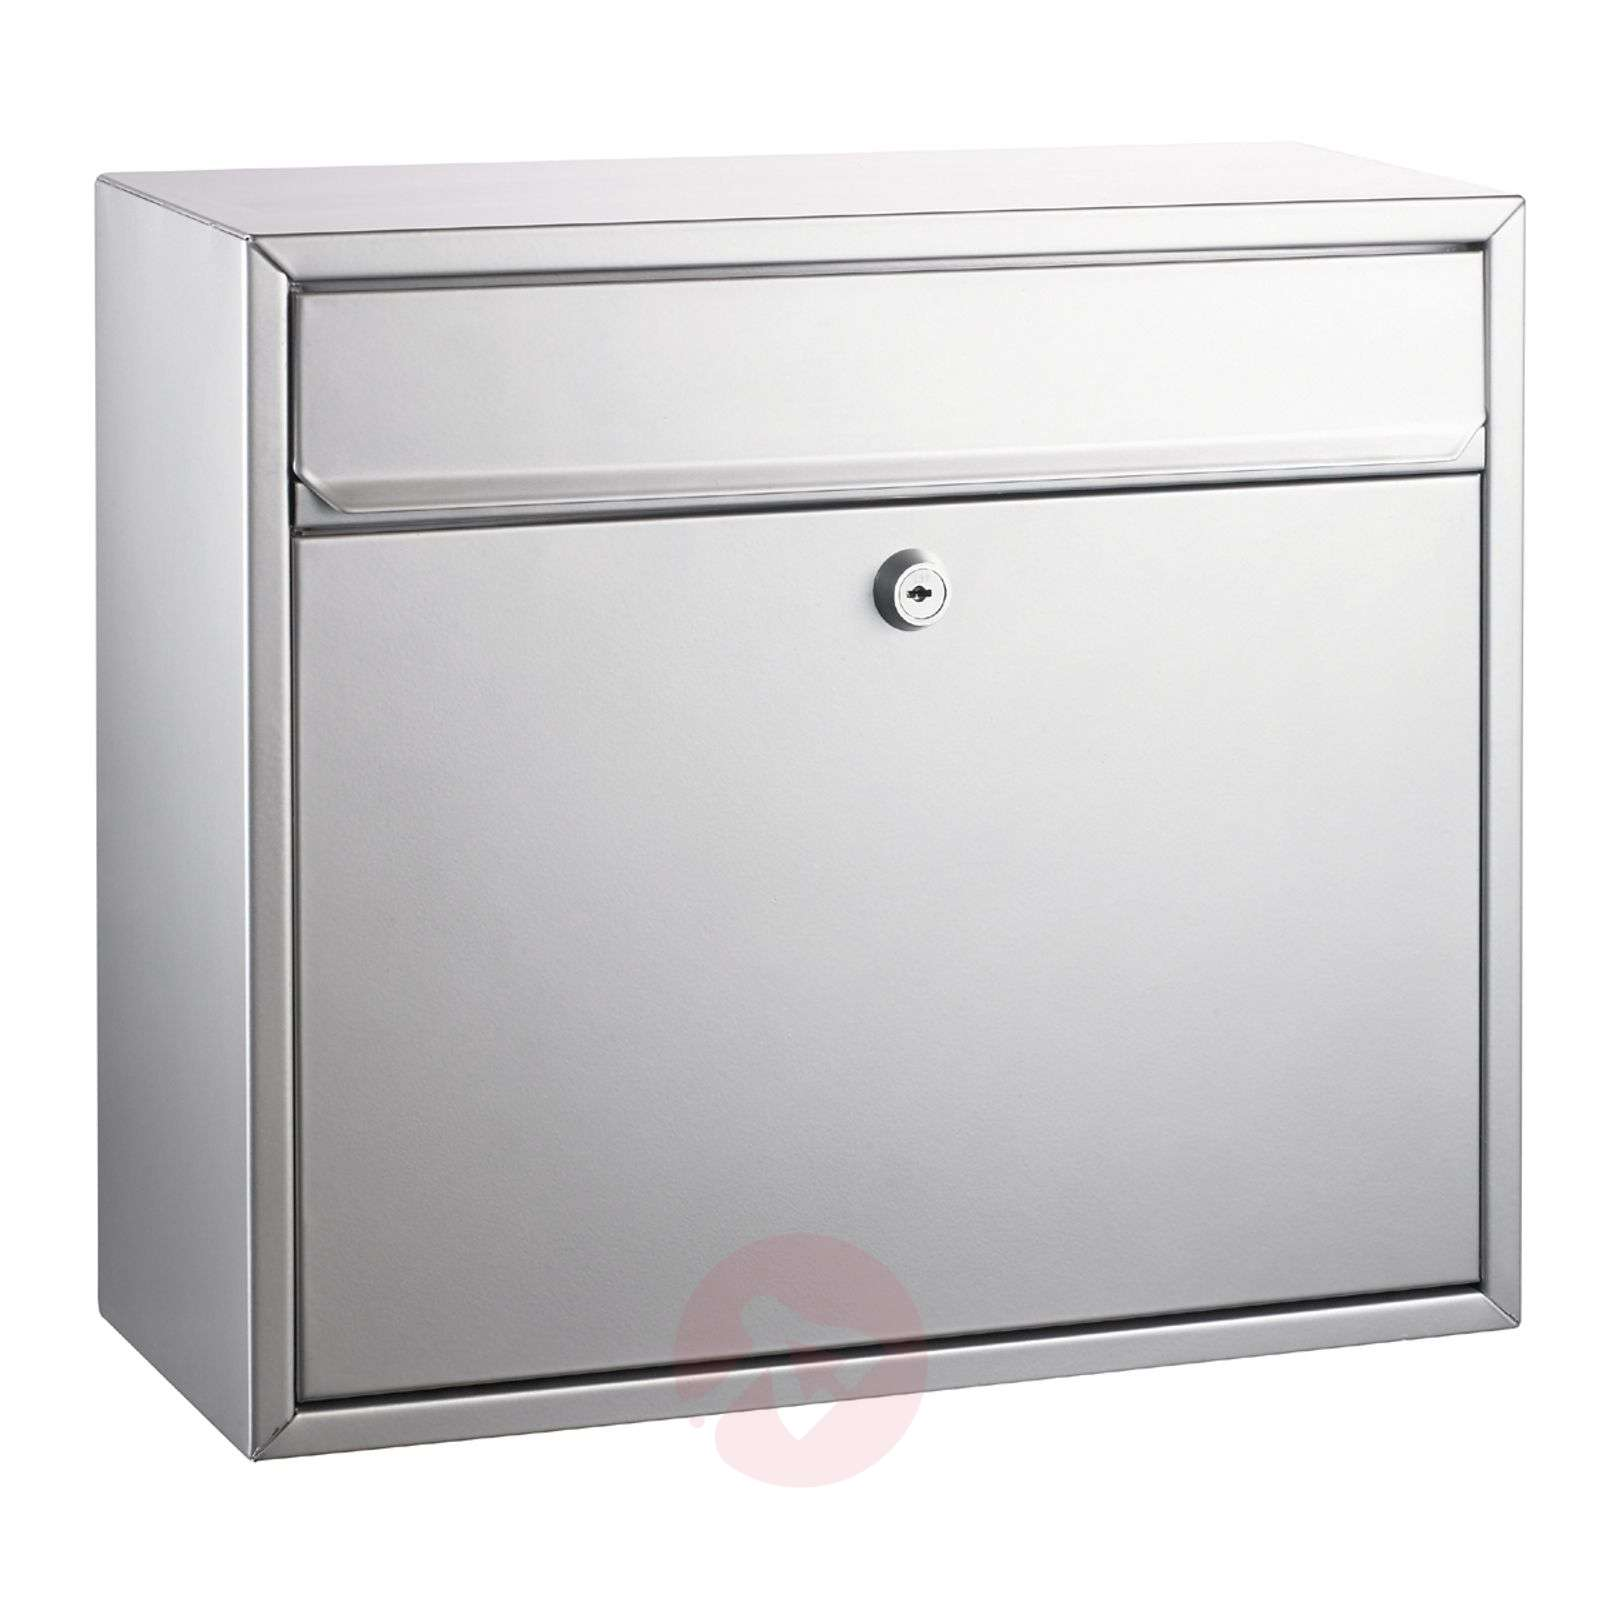 Letterbox mount silver painted-1003093-01